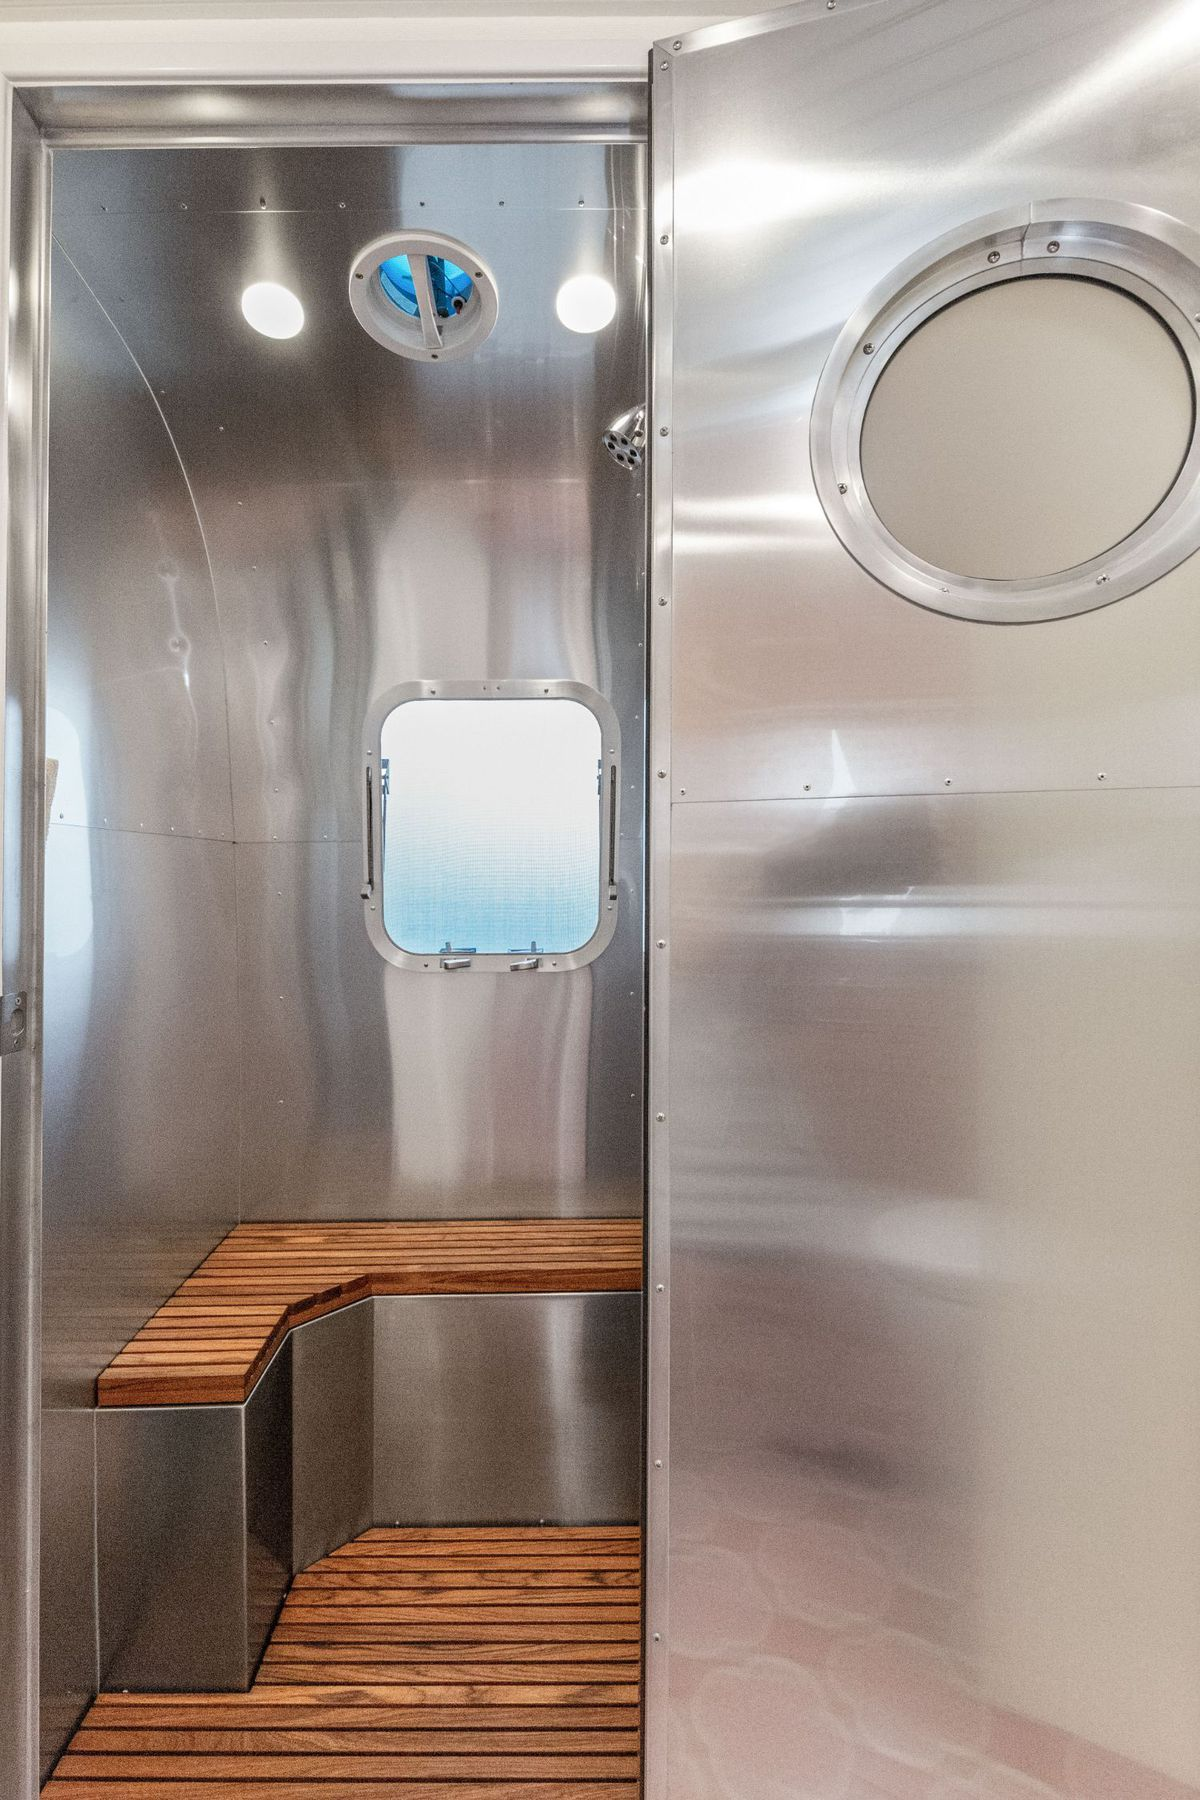 The shower area has aluminum walls, a square porthole window, and a wooden seat and flooring.